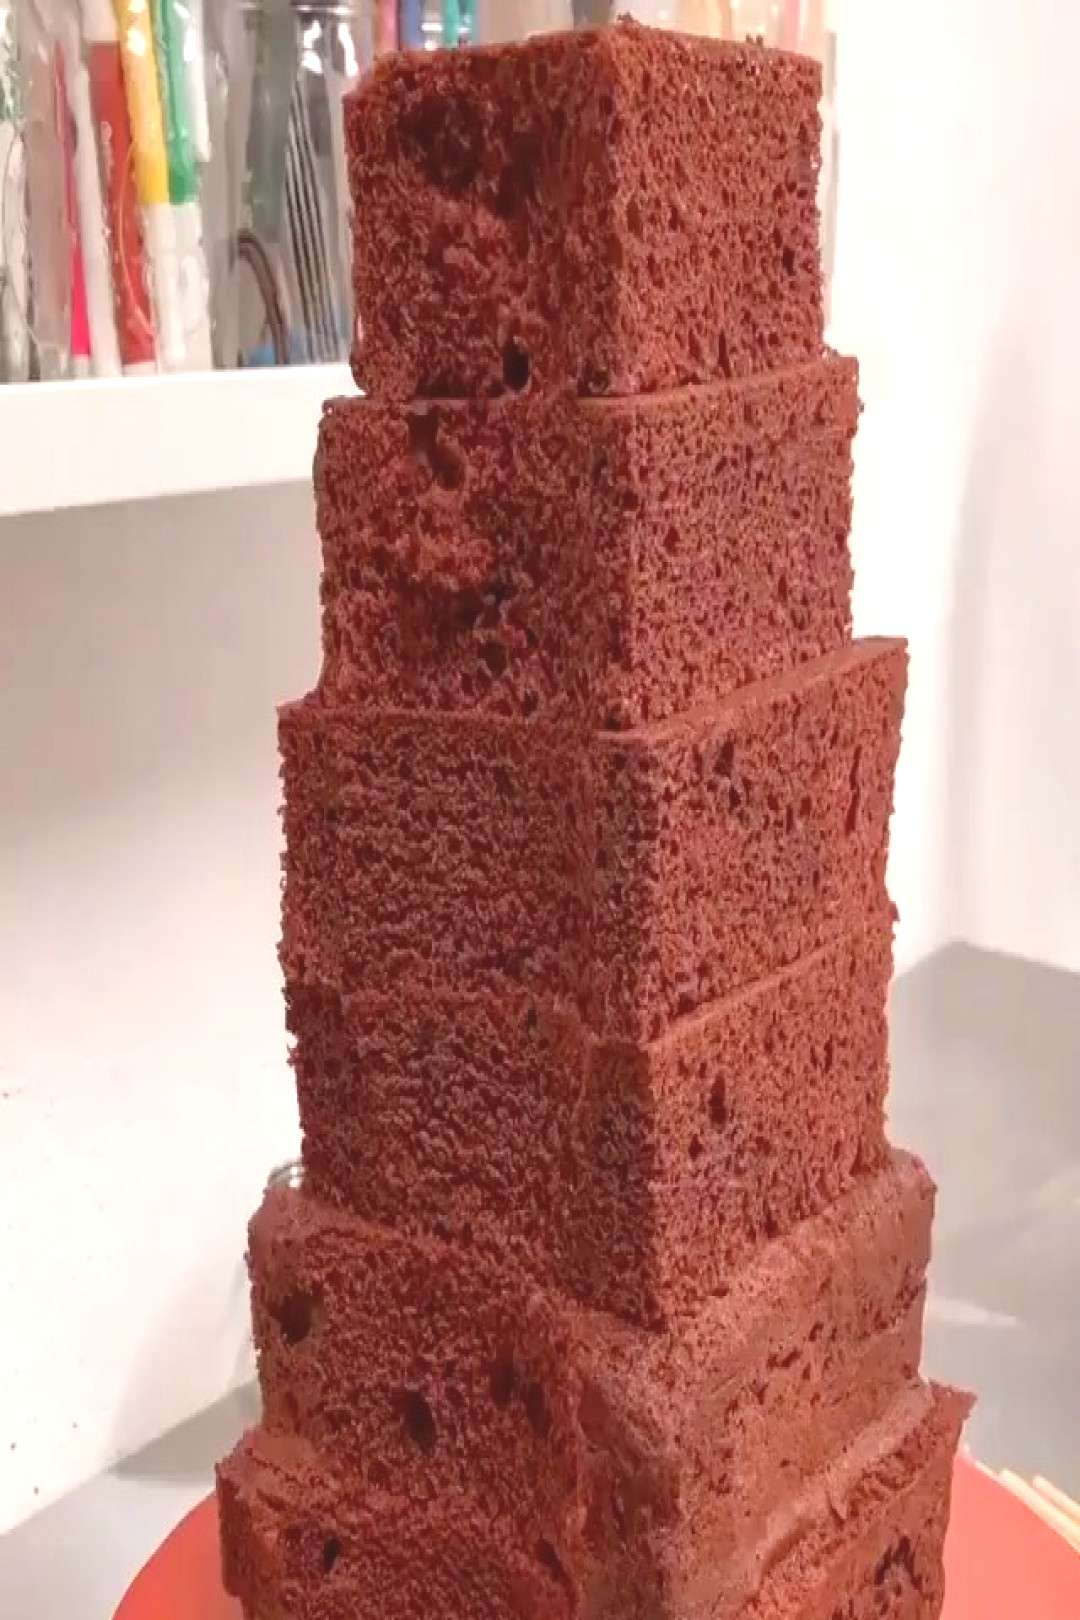 So many layers Tag a friend who would like to eat it alone Credit